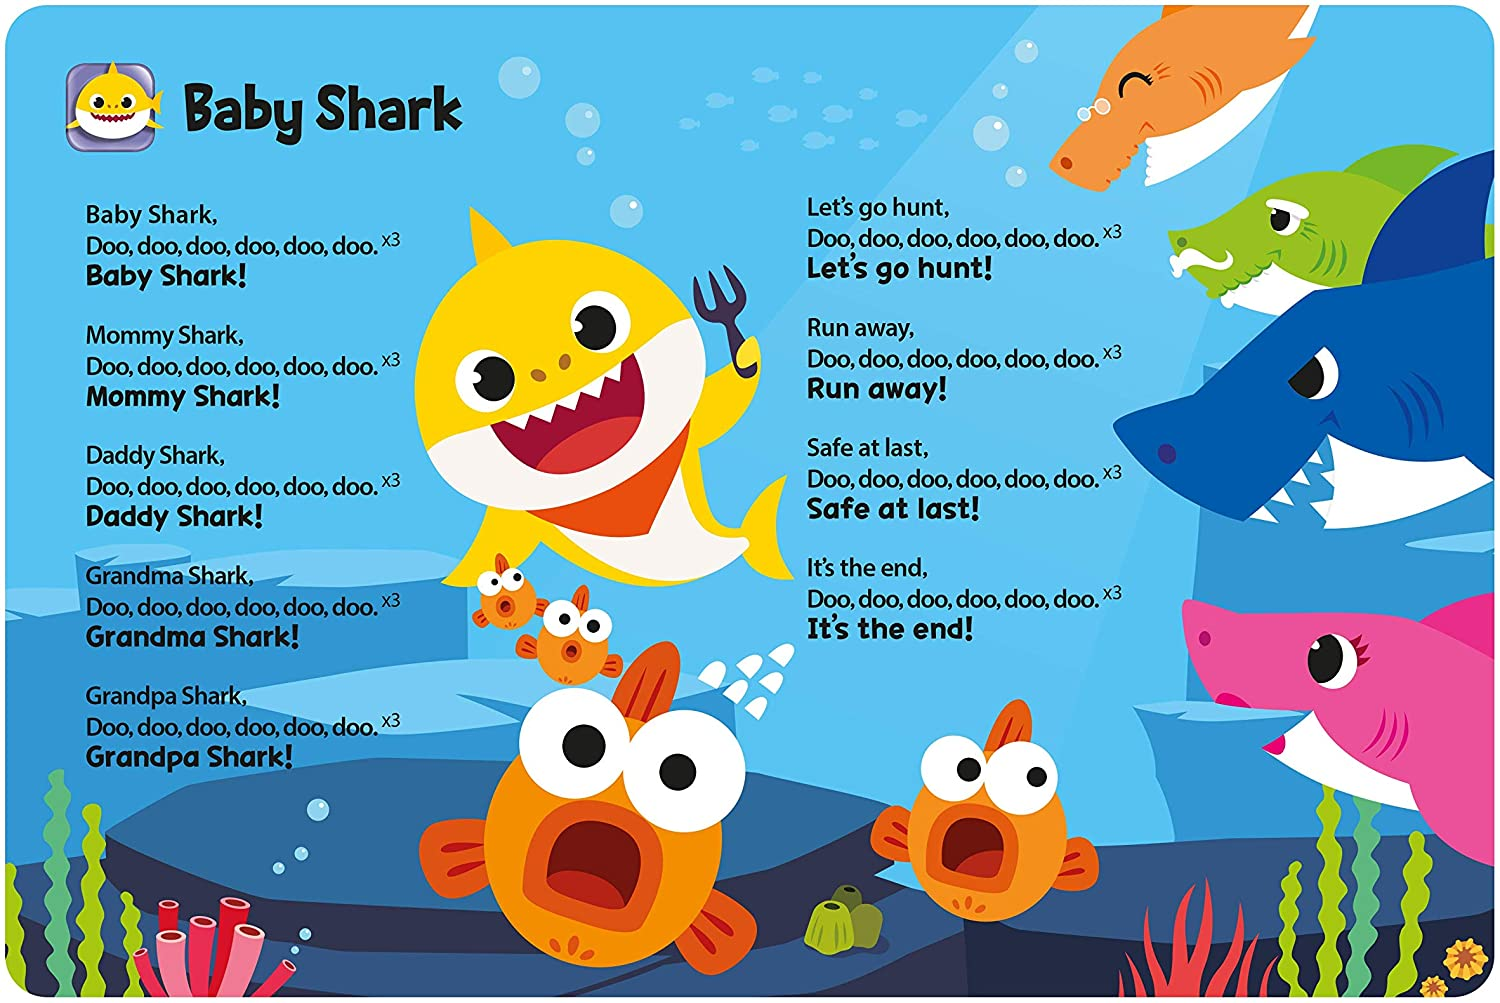 B07L8K66HT Pinkfong Baby Shark Official Sound Book 81qV-KMGTzL